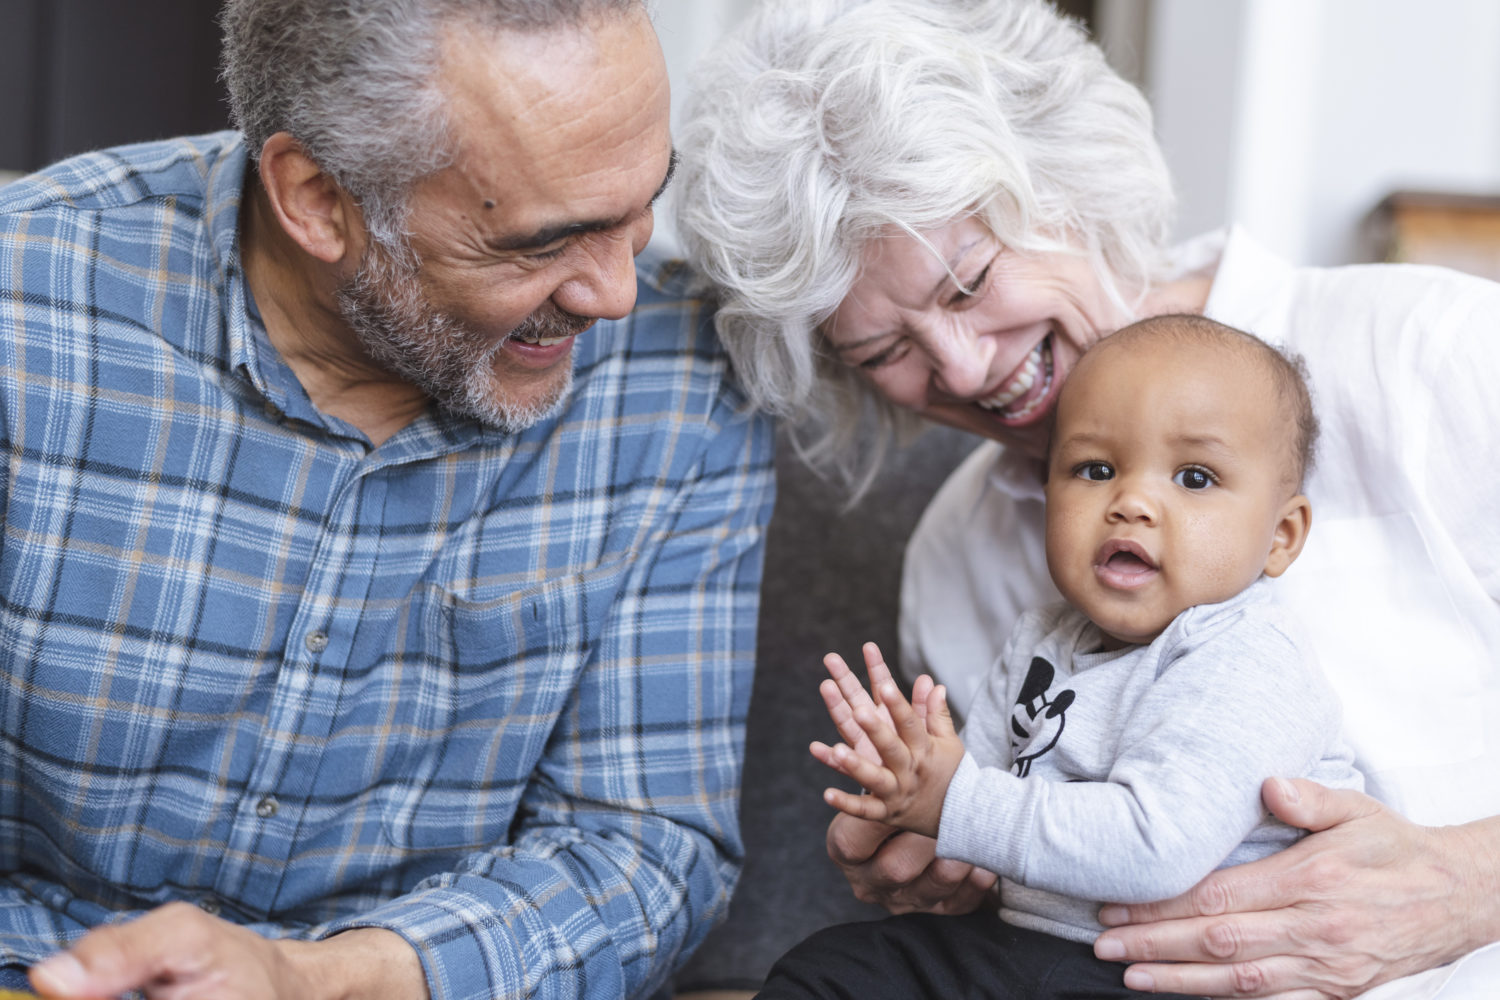 Best Life Insurance For Seniors In 2020 Top 5 Companies Termlife2go